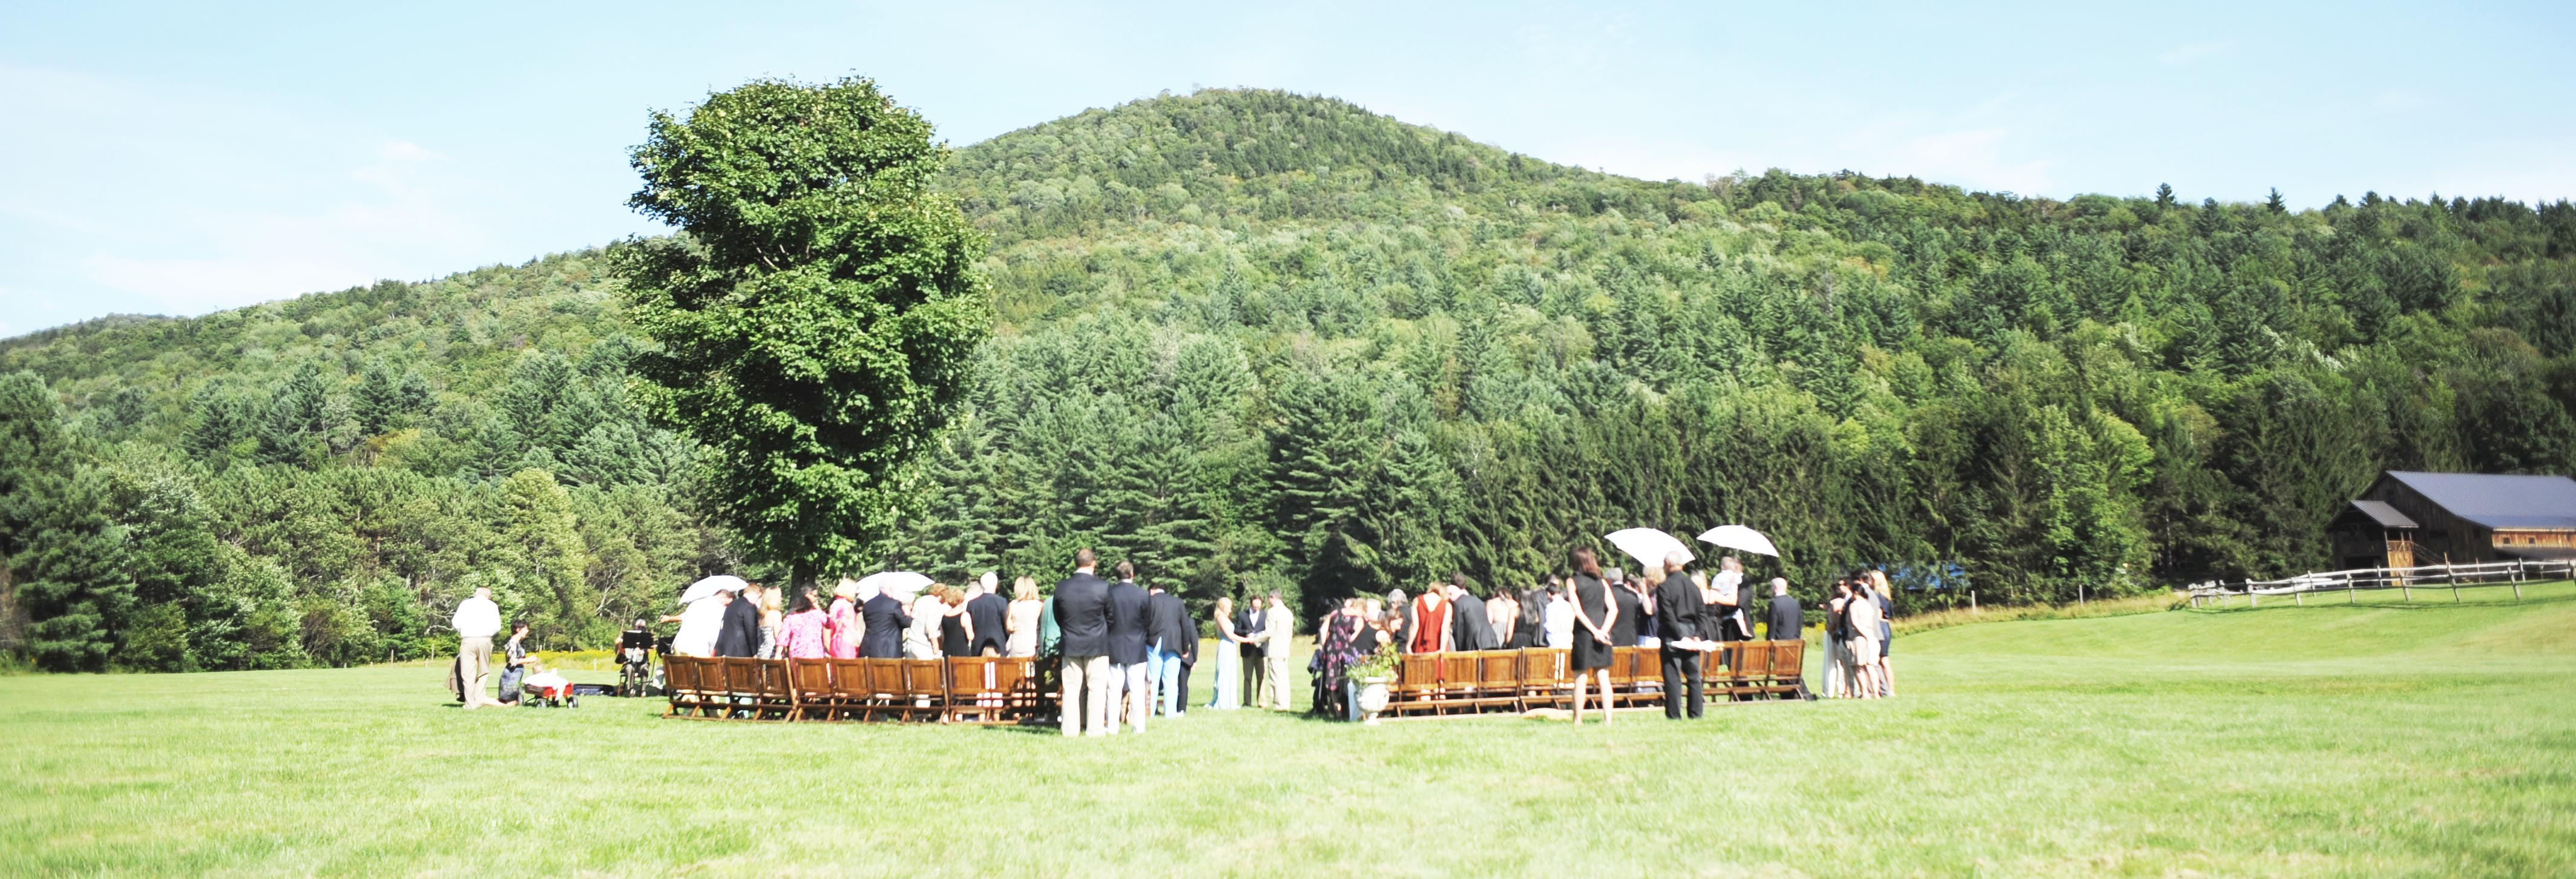 Riverside_Farm_Wedding_Ceremony